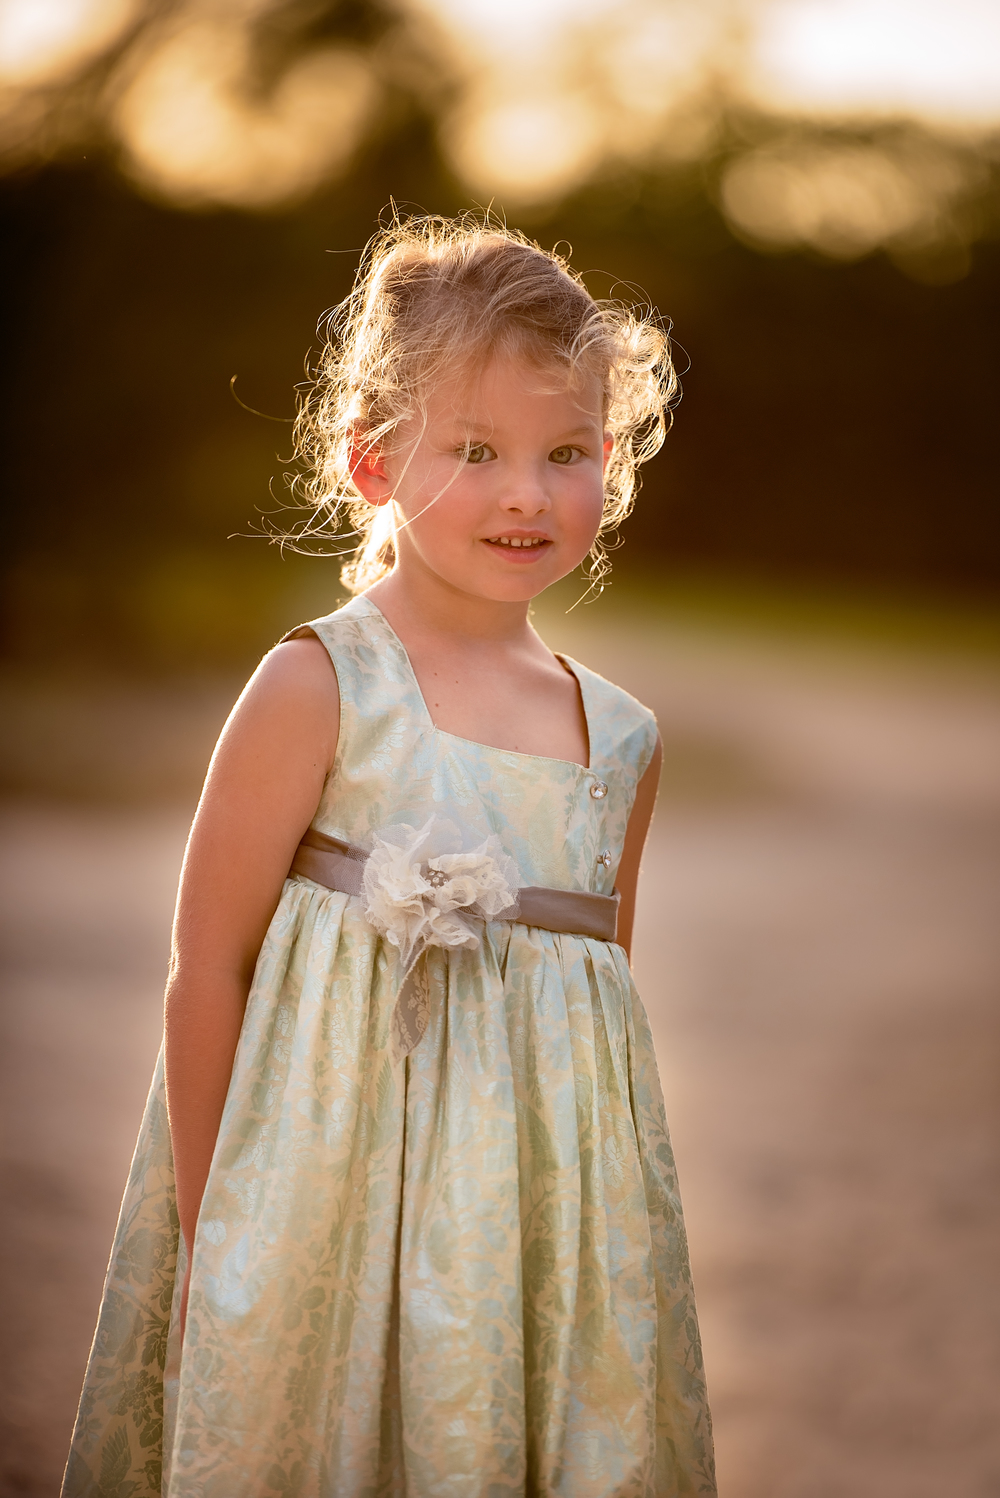 West London child portrait photographer